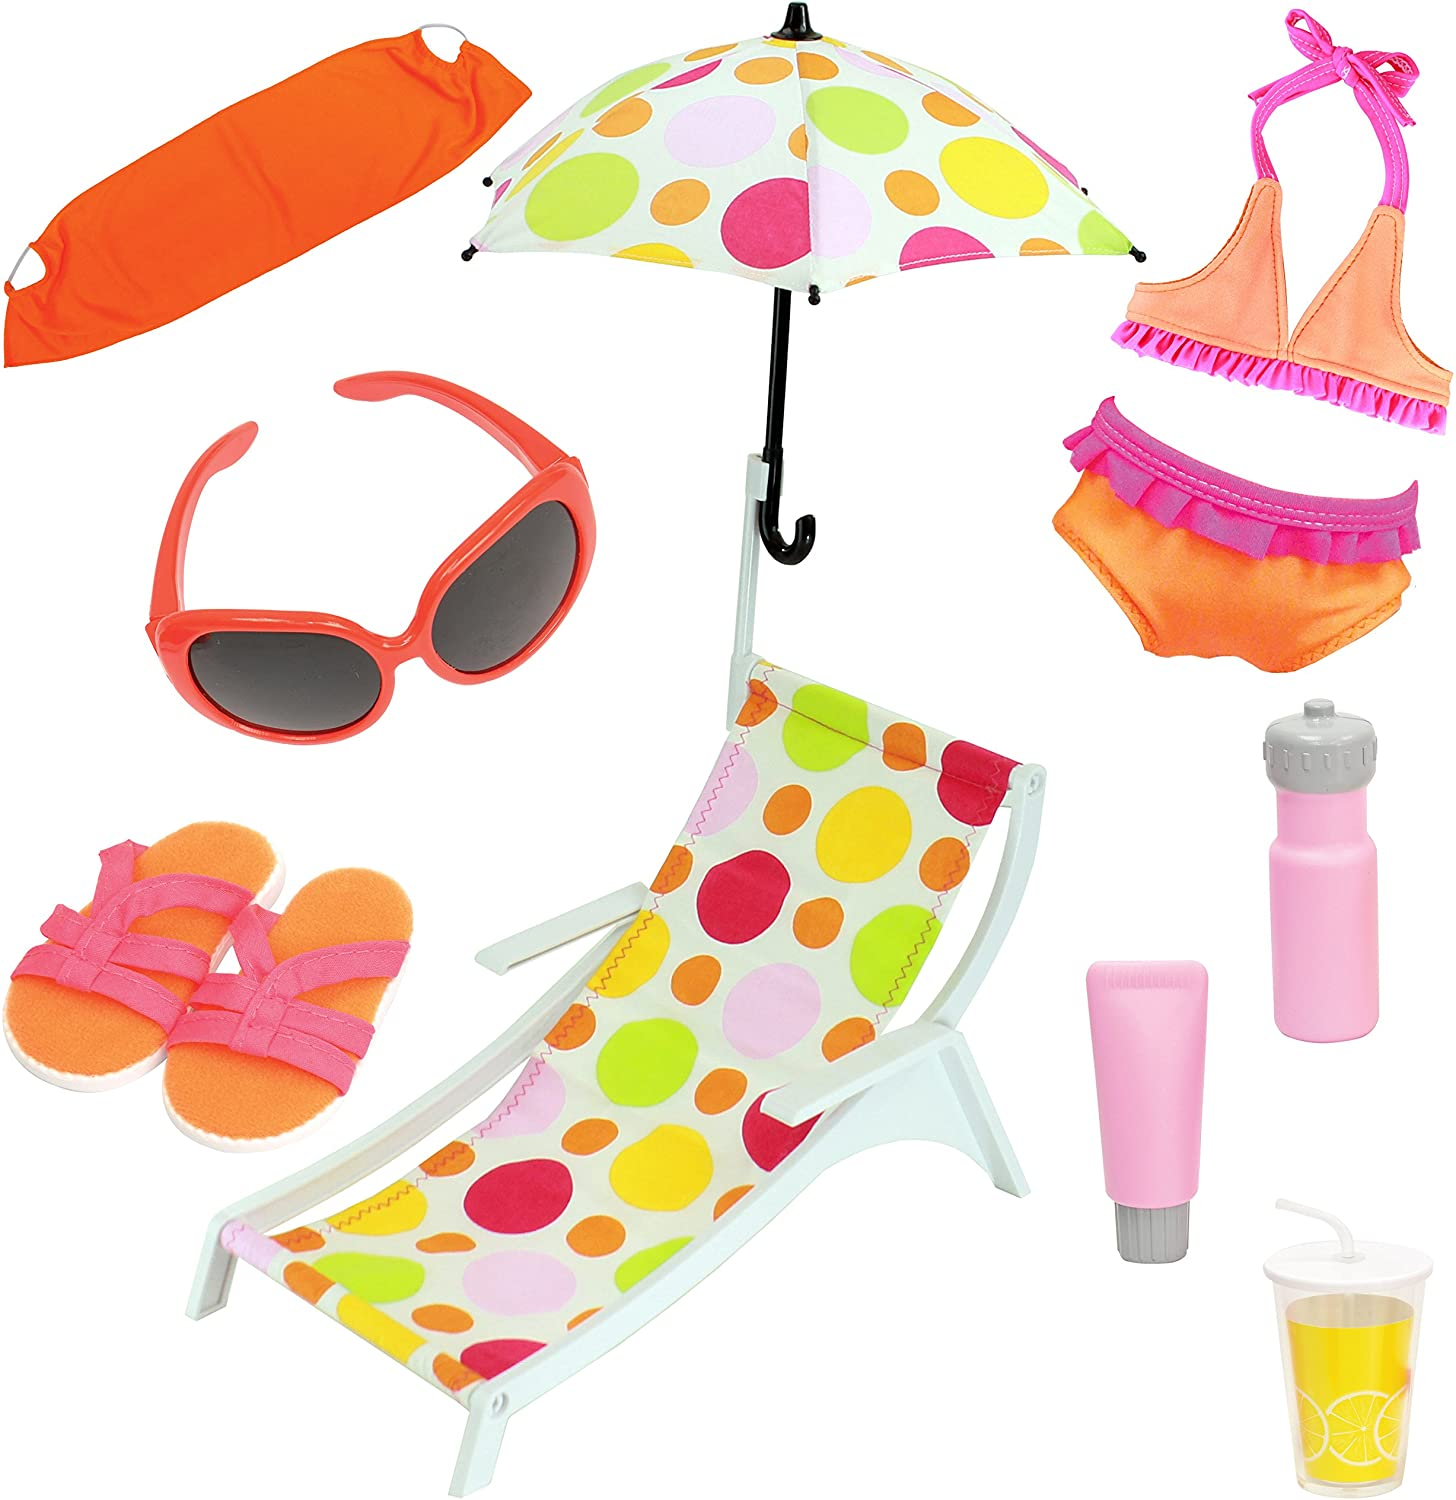 Beverly Hills Doll Accessories Doll Beach Set with Swimsuit and Accessories, 10 Piece Beach and Pool Playset, Fits 18 Inch American Girl Doll, Great Value Pack, Doll Not Included